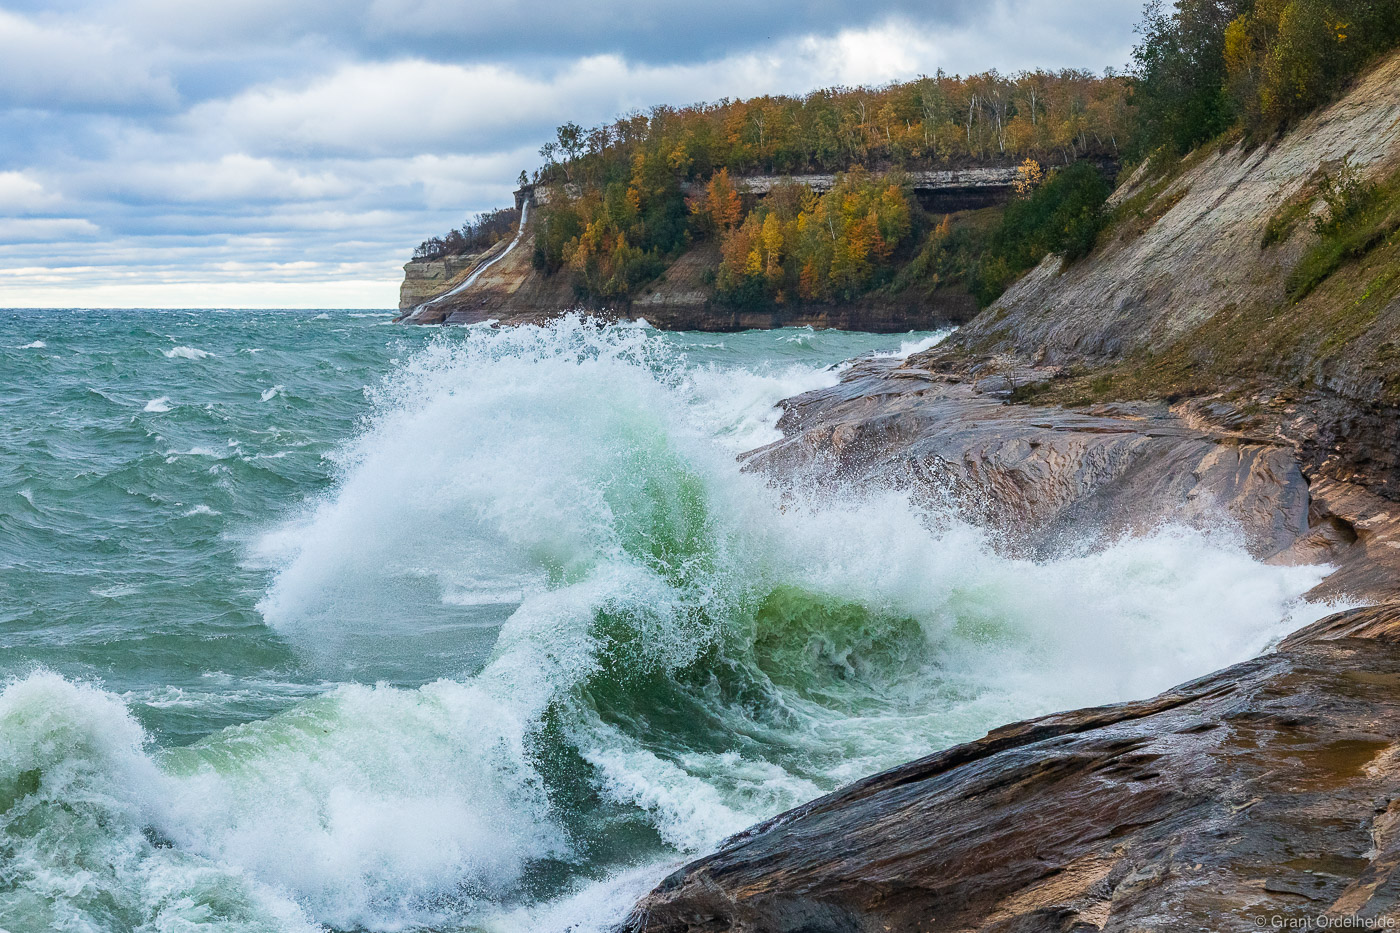 A wave crashing on the sandstone cliffs of Pictured Rocks National Lakeshore near Munising, Michigan.